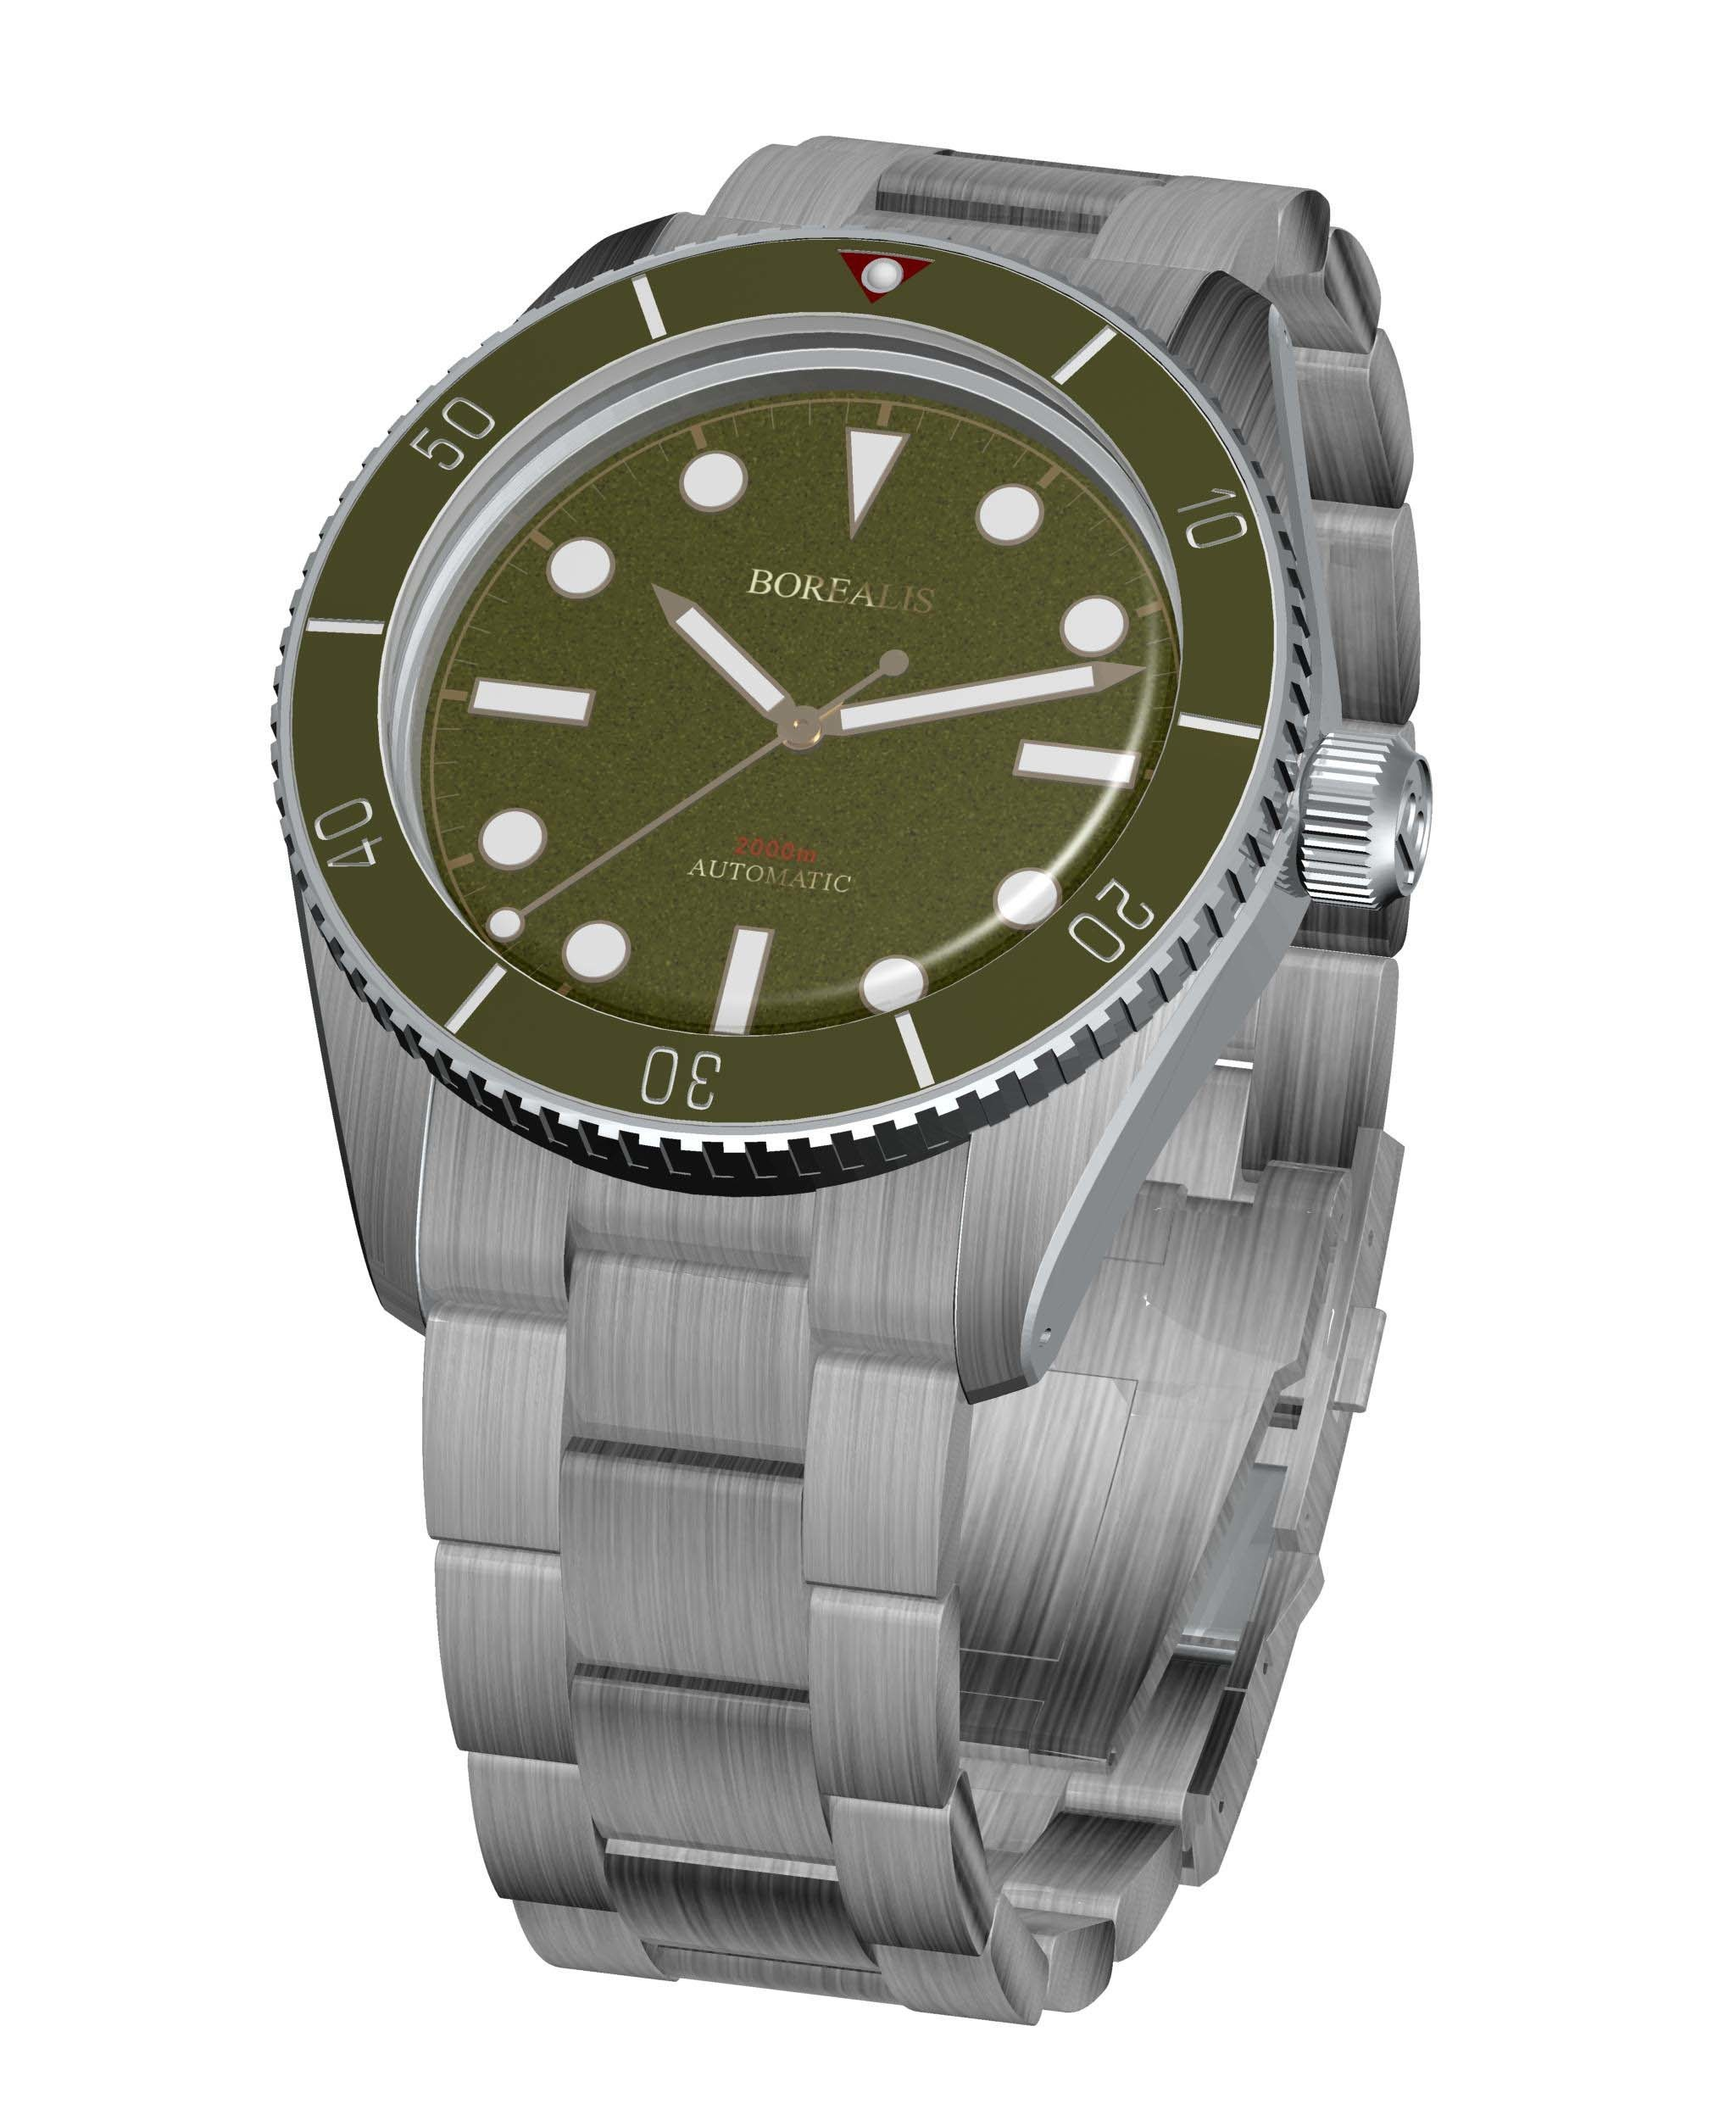 Borealis Bull Shark Automatic Diver Watch No Date Miyota 9015 Ceramic Green Bezel Green Dial